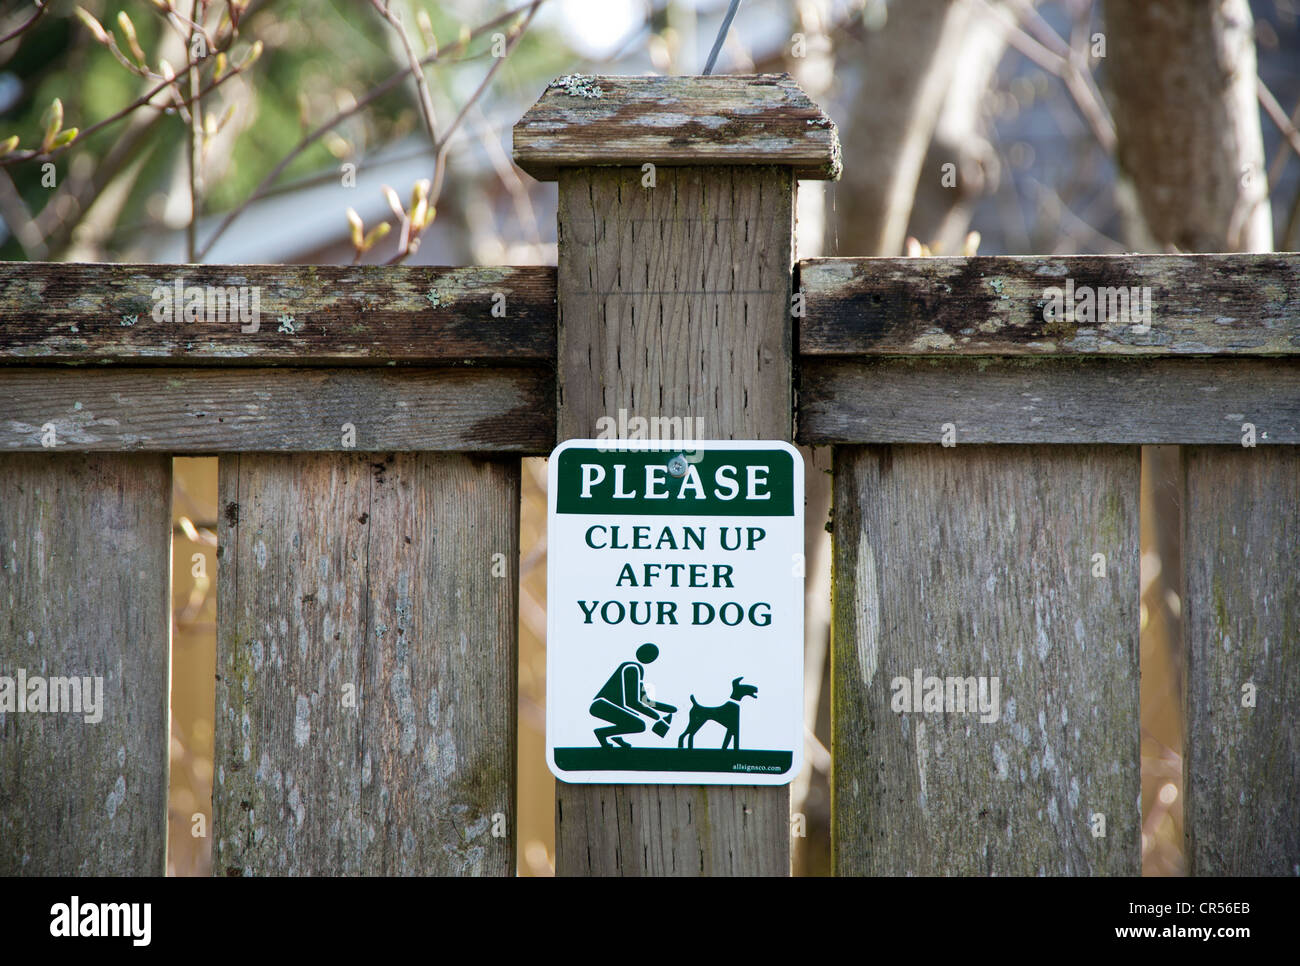 Sign on a fencepost asking people to clean up after their dog - Stock Image